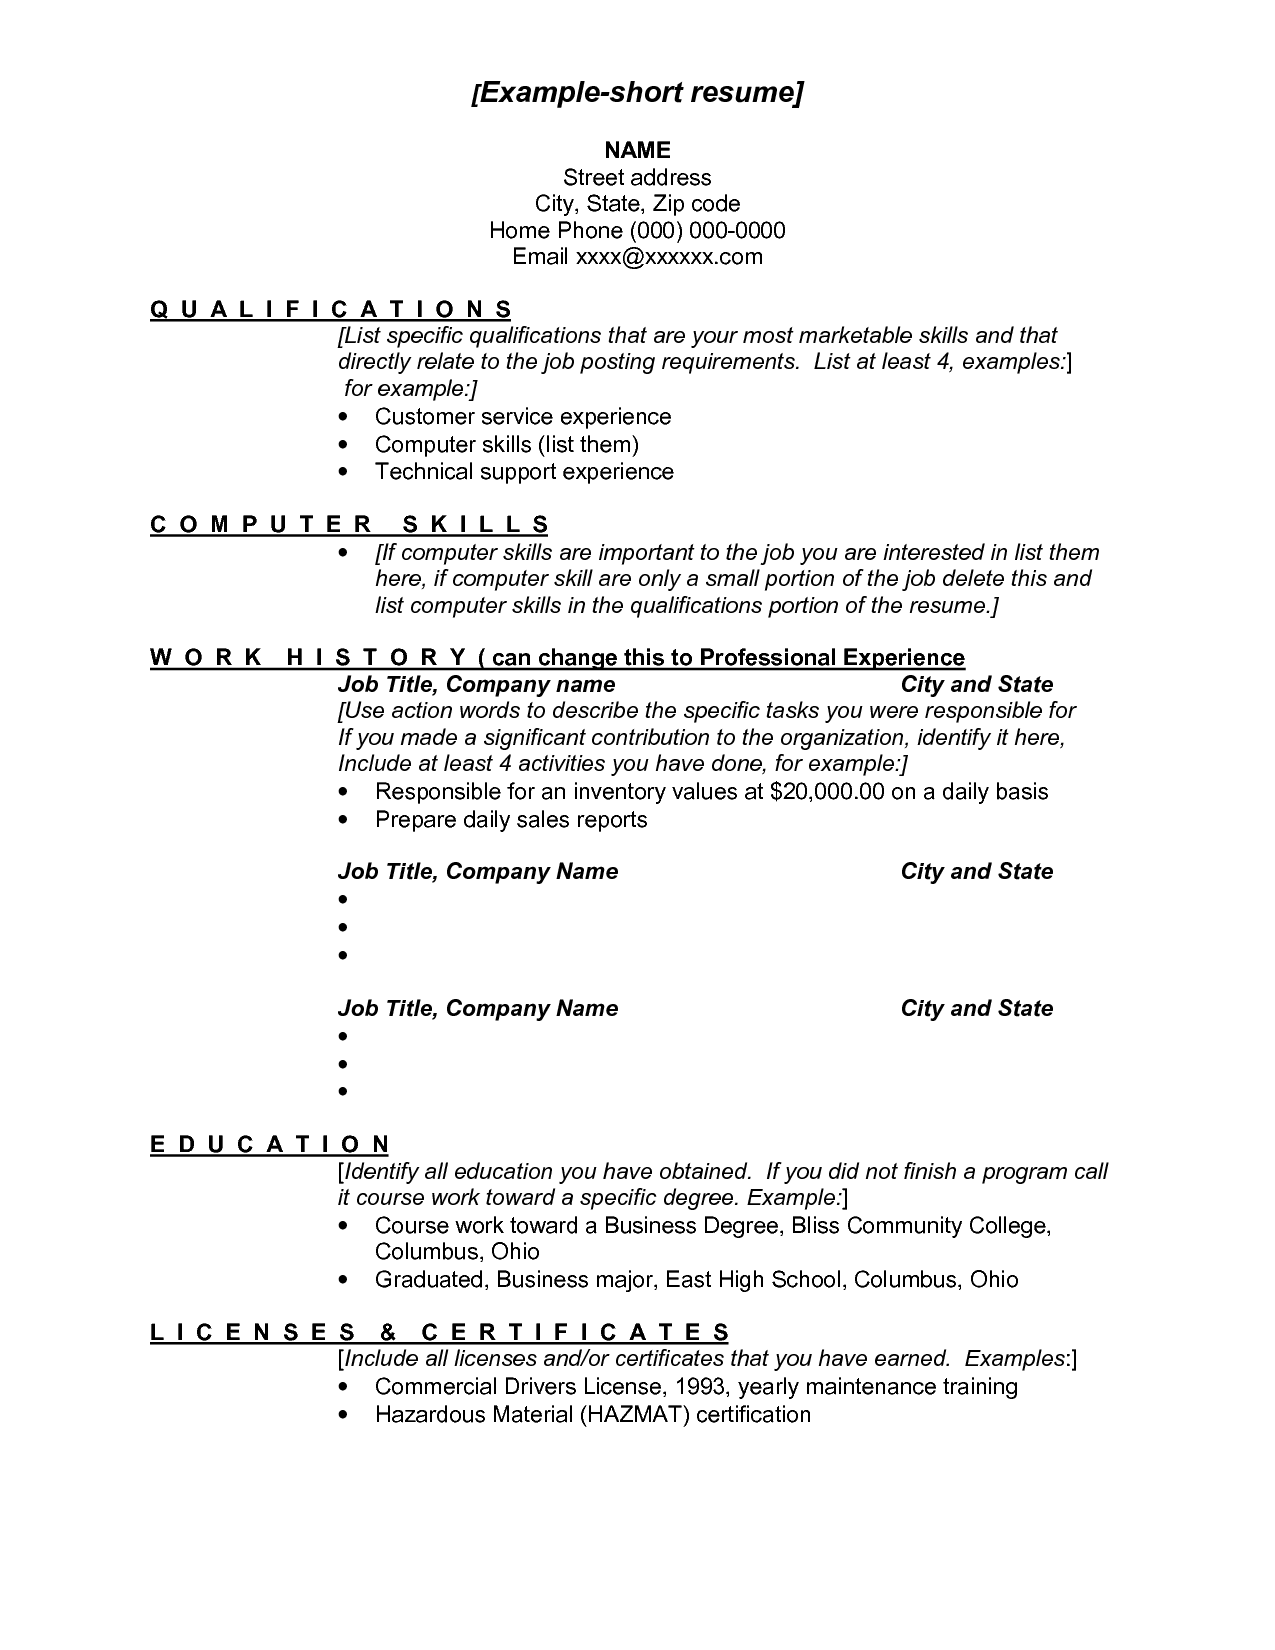 Examples Of A Short Resumes  ExampleShort Resume  Short Resume